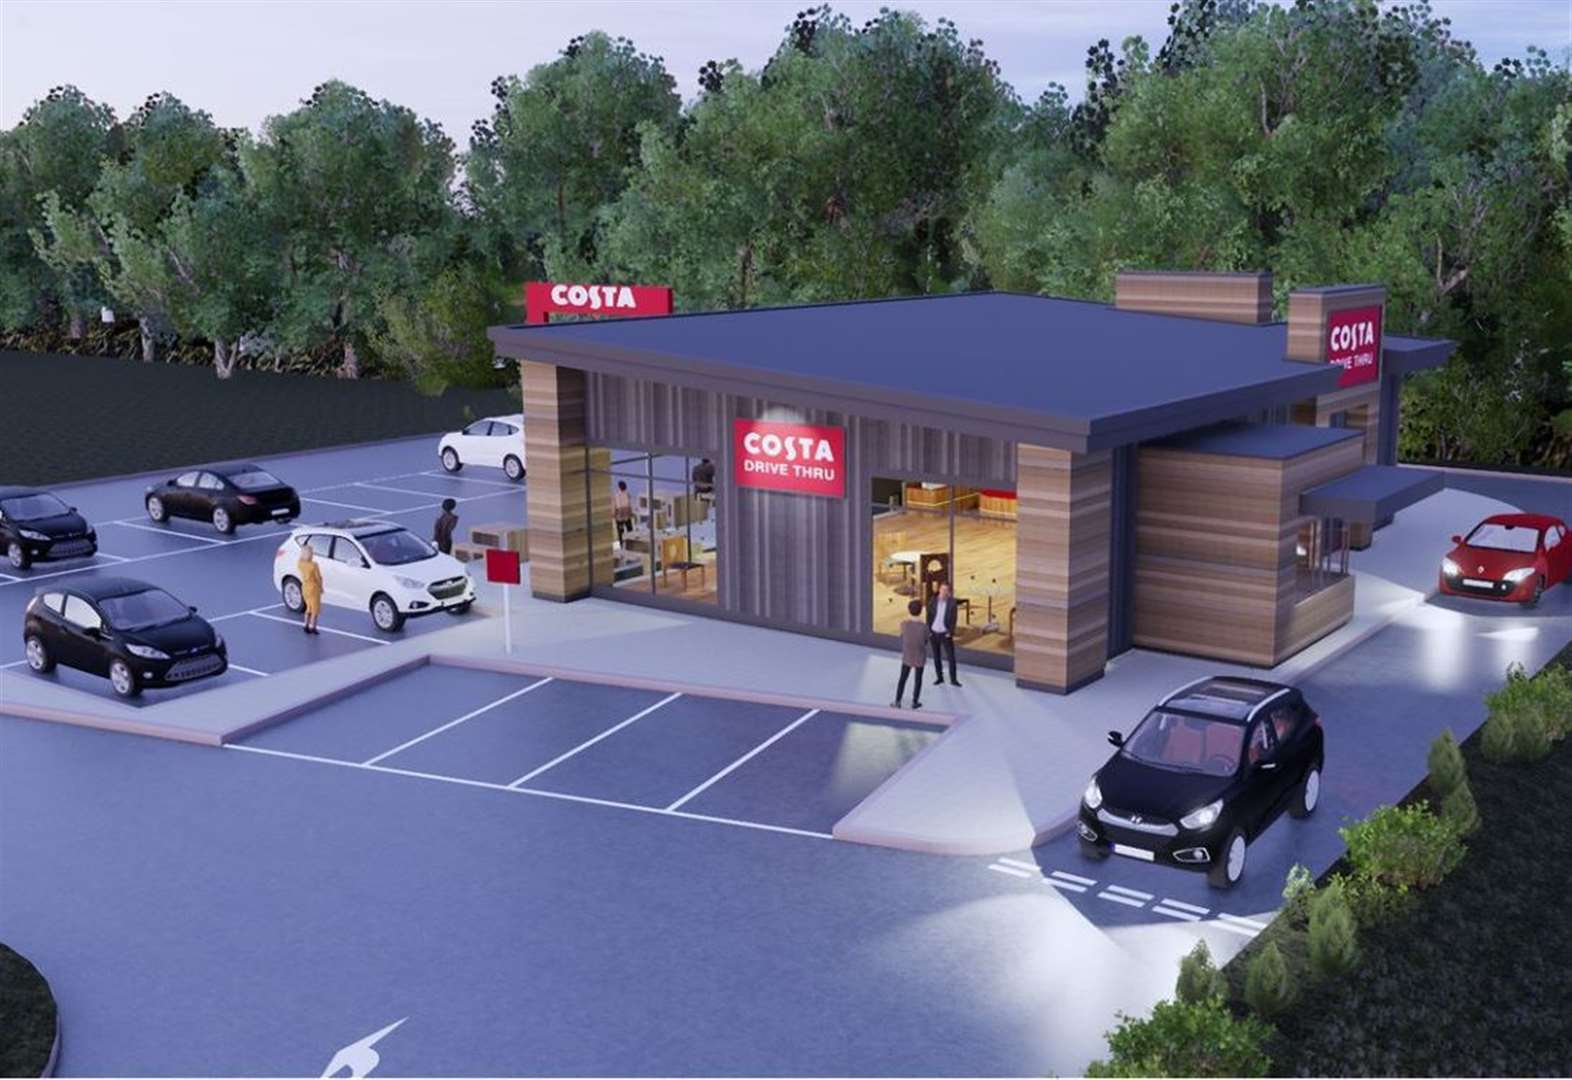 New Costa drive-thru decision due